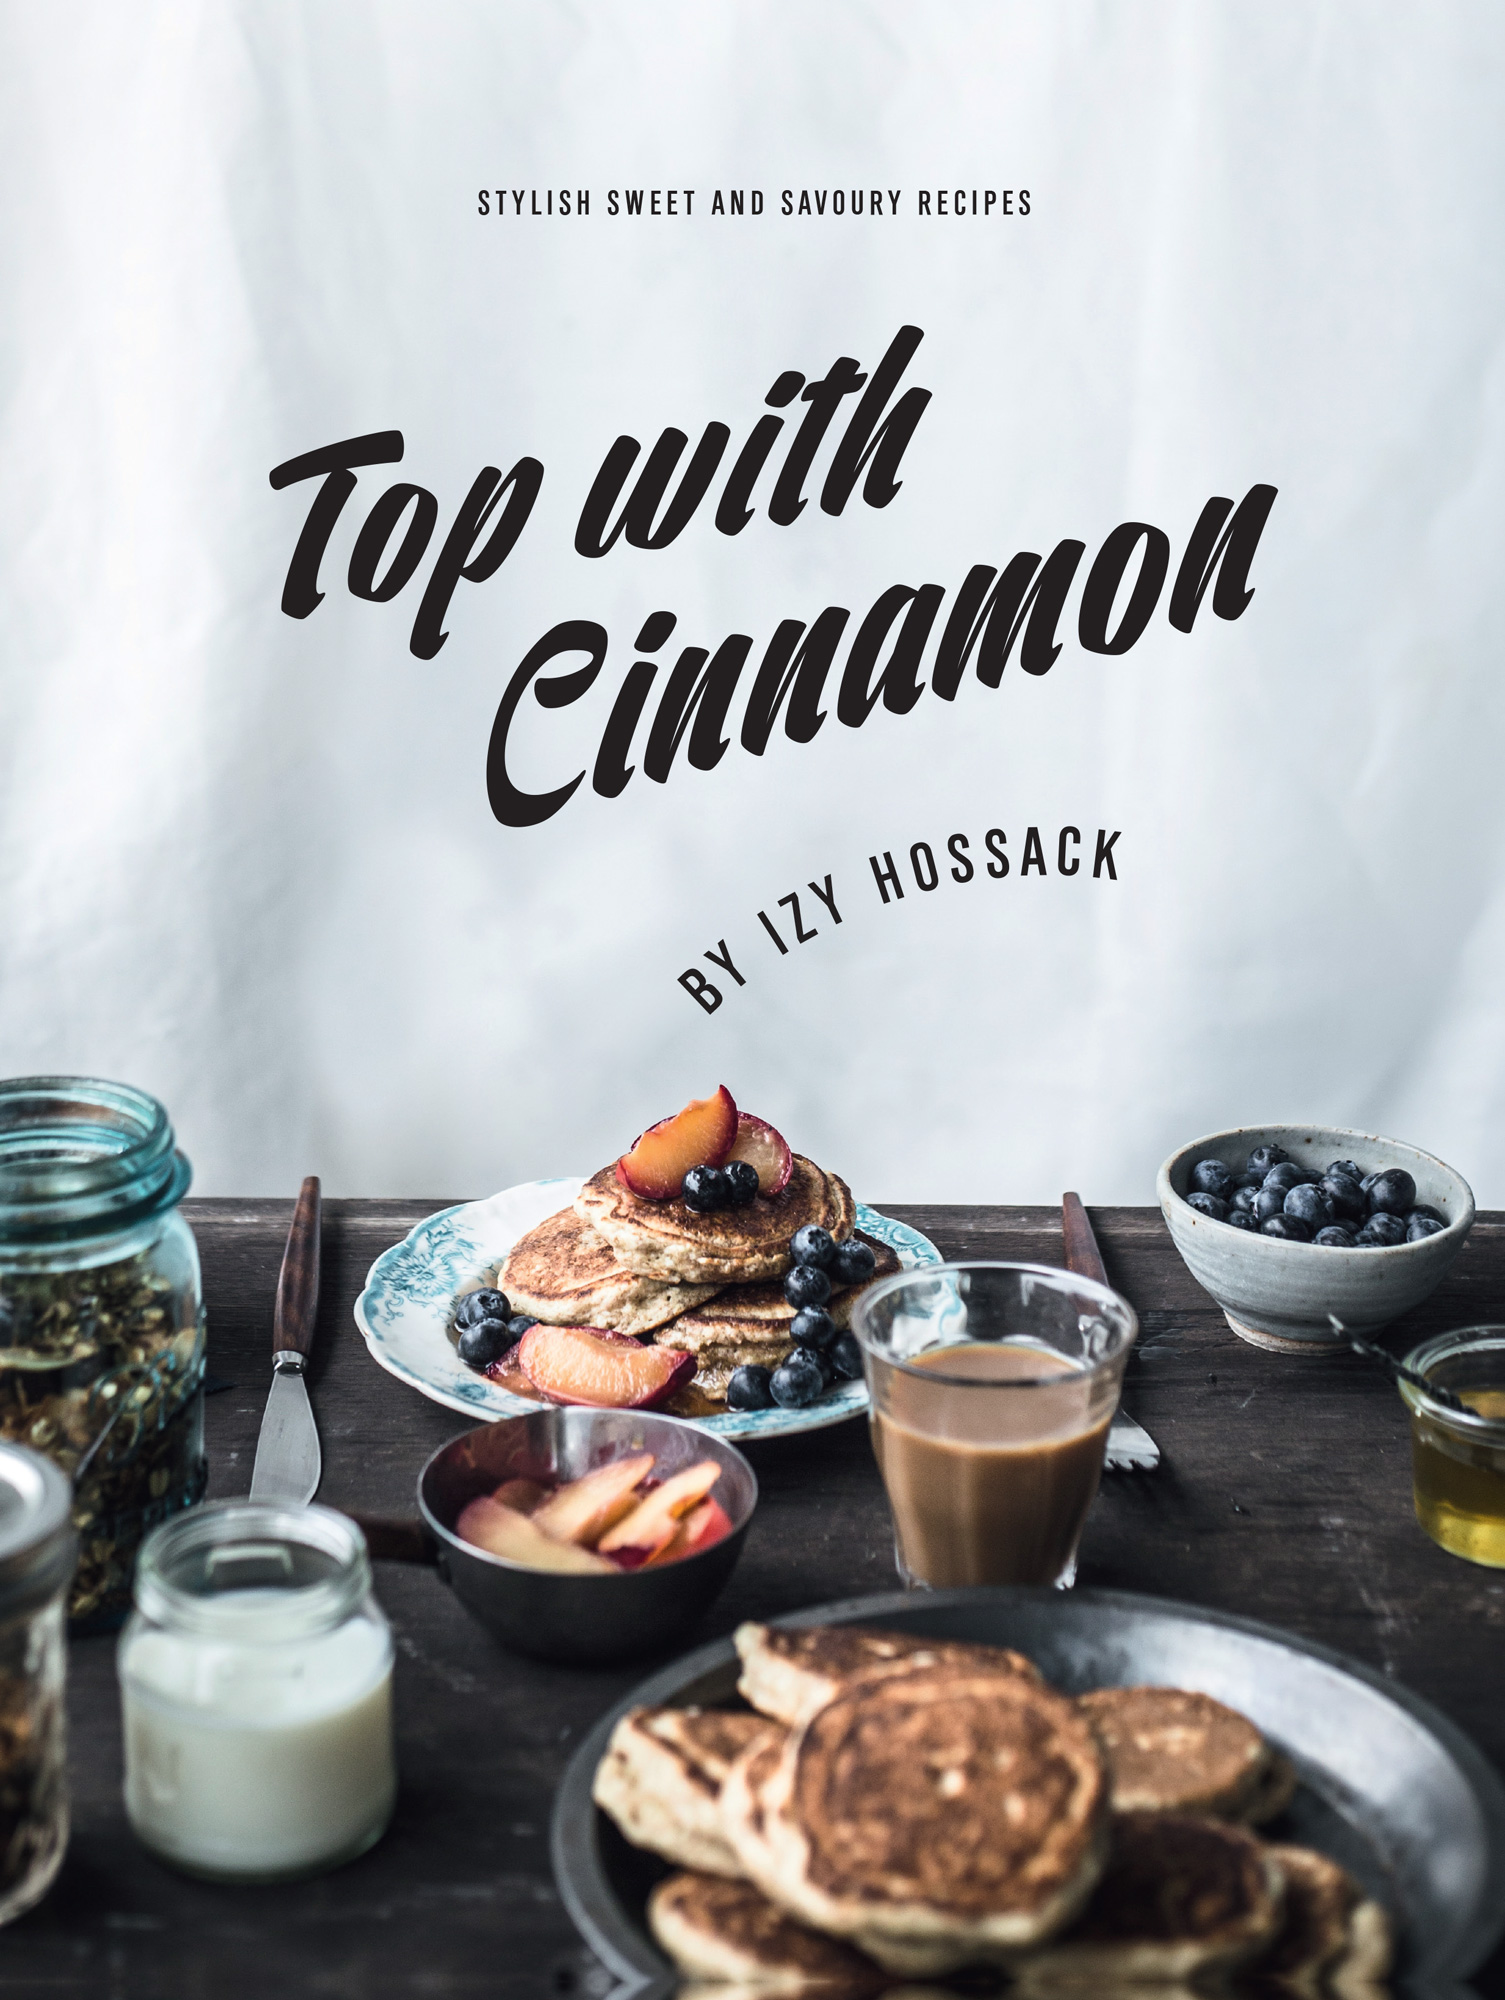 Top With Cinnamon